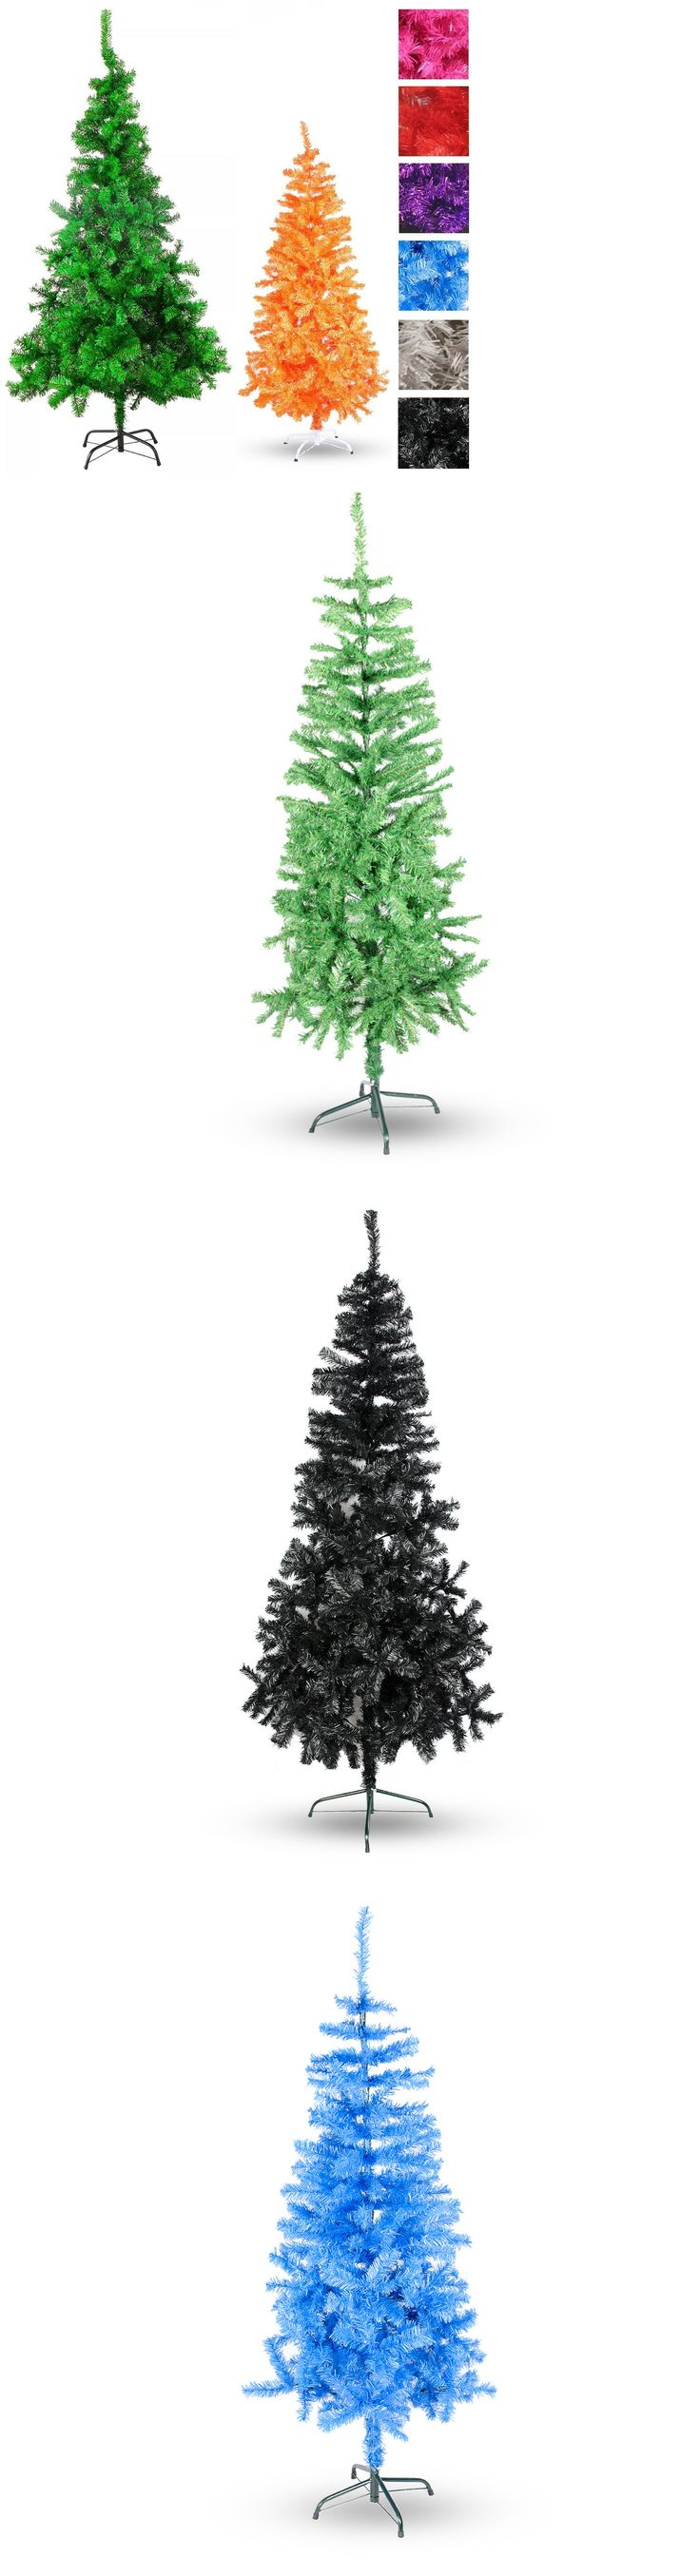 Artificial Christmas Trees 117414: 2Ft - 9Ft Pvc Artificial Christmas Tree Unlit Multiple Colors Sizes Xs S M L Xl -> BUY IT NOW ONLY: $65 on eBay!